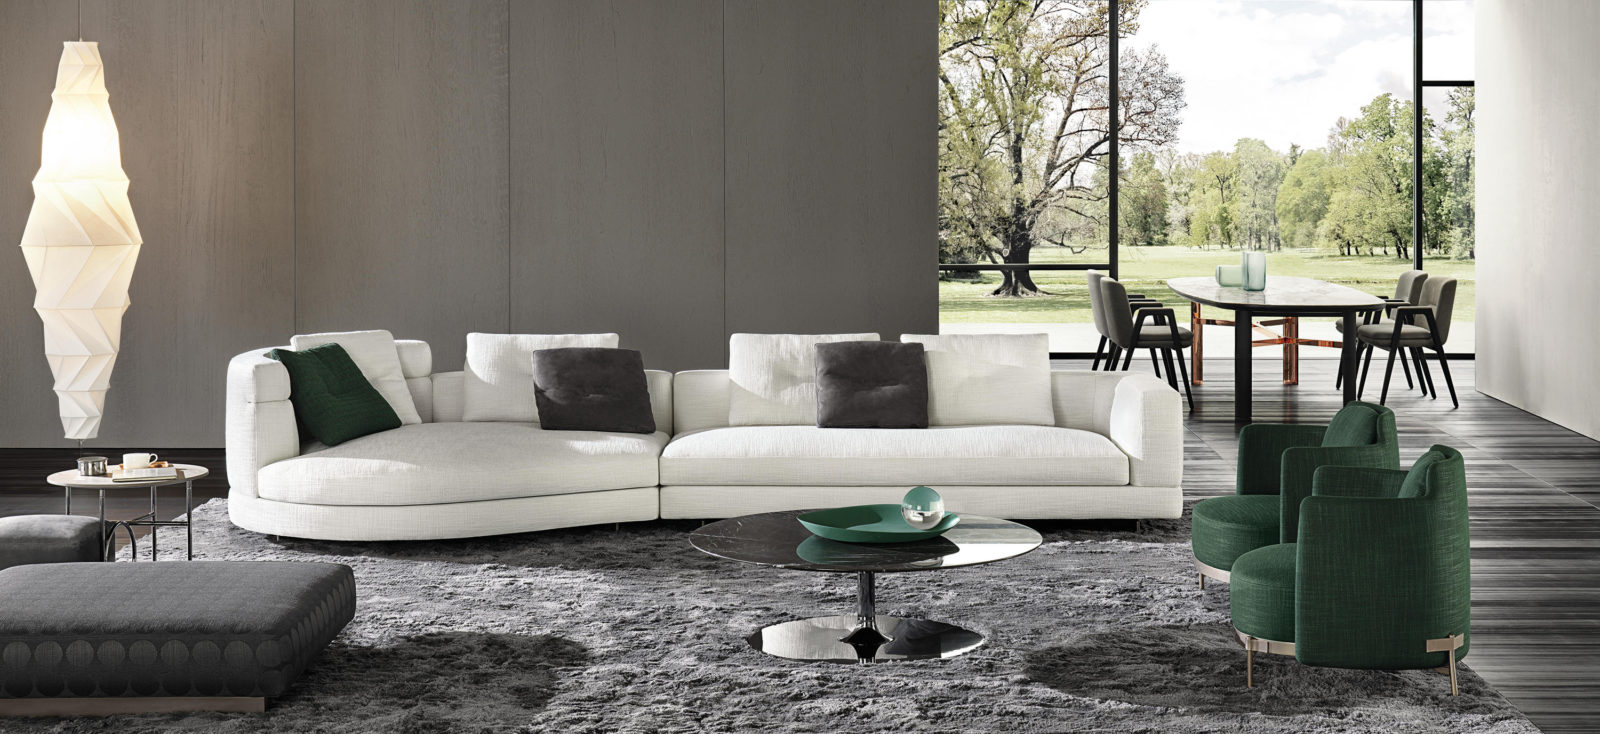 Minotti: top quality furniture made in Italy